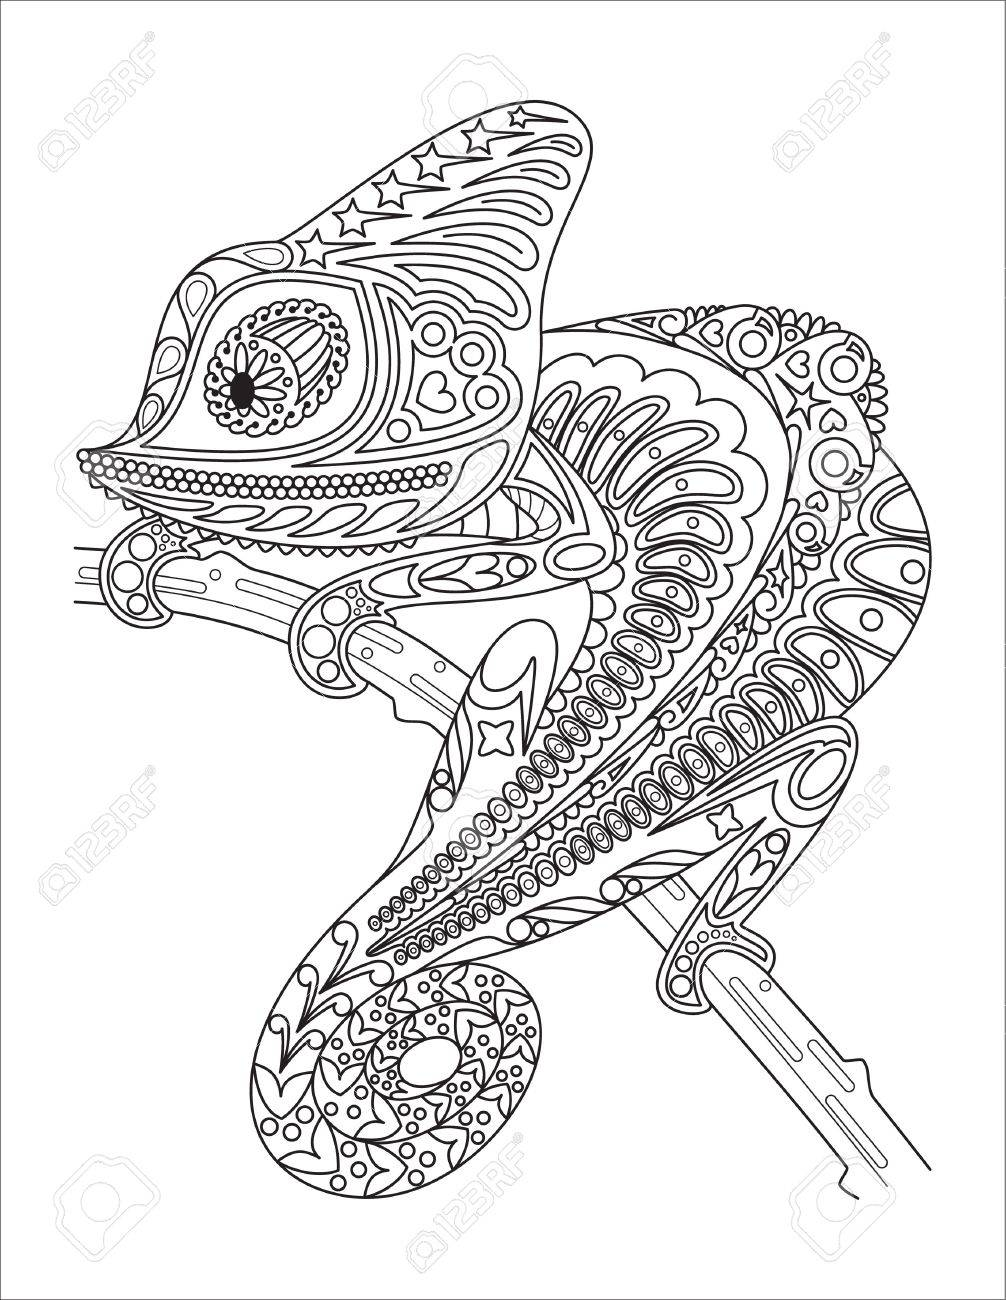 Vector Monochrome Chameleon Coloring Page Black Over White. Royalty ...